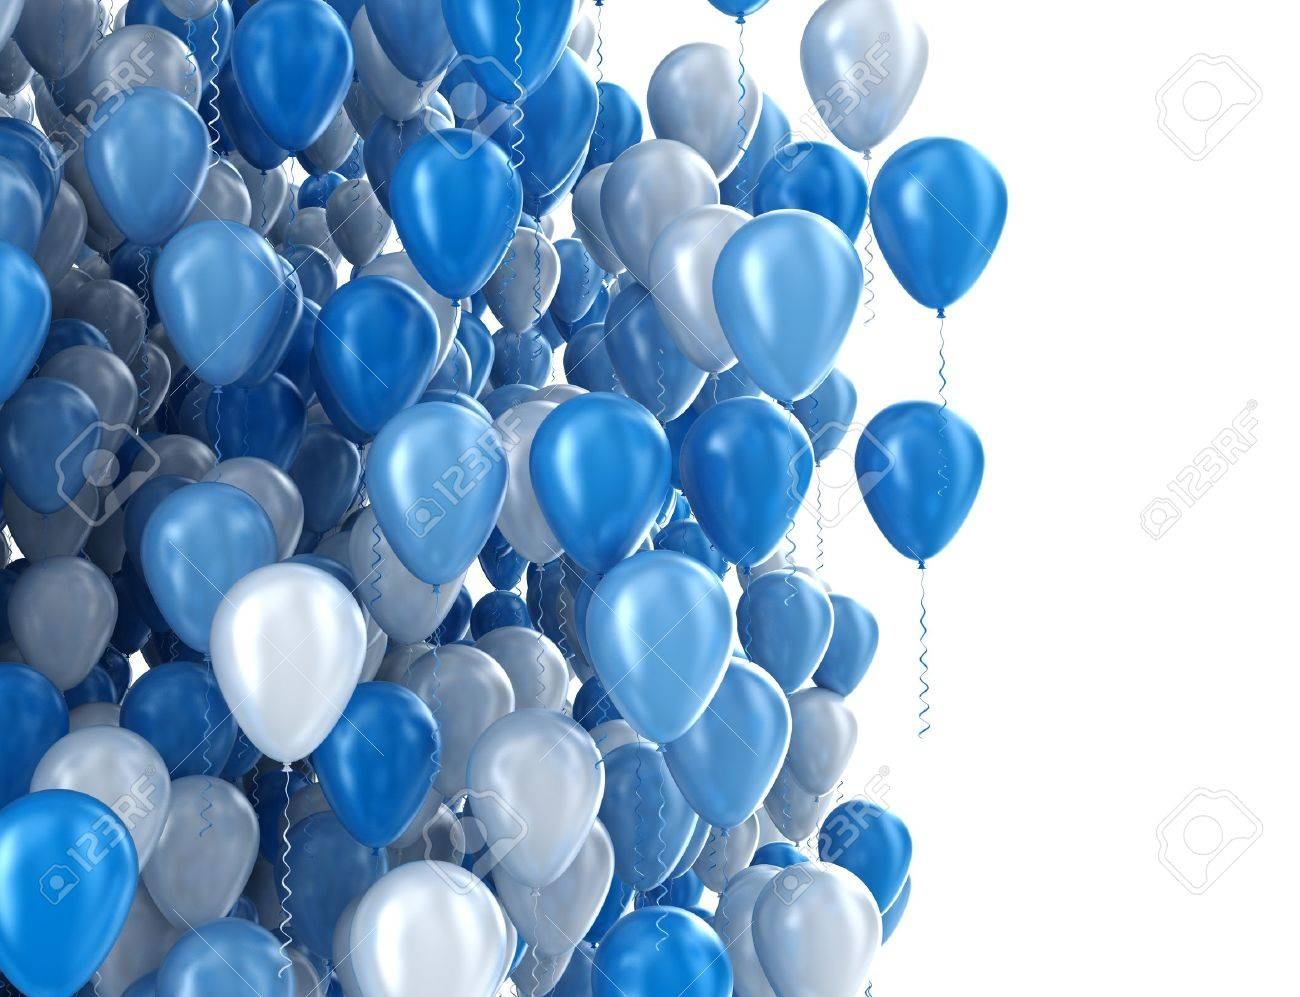 Balloons isolated on white - 18429663